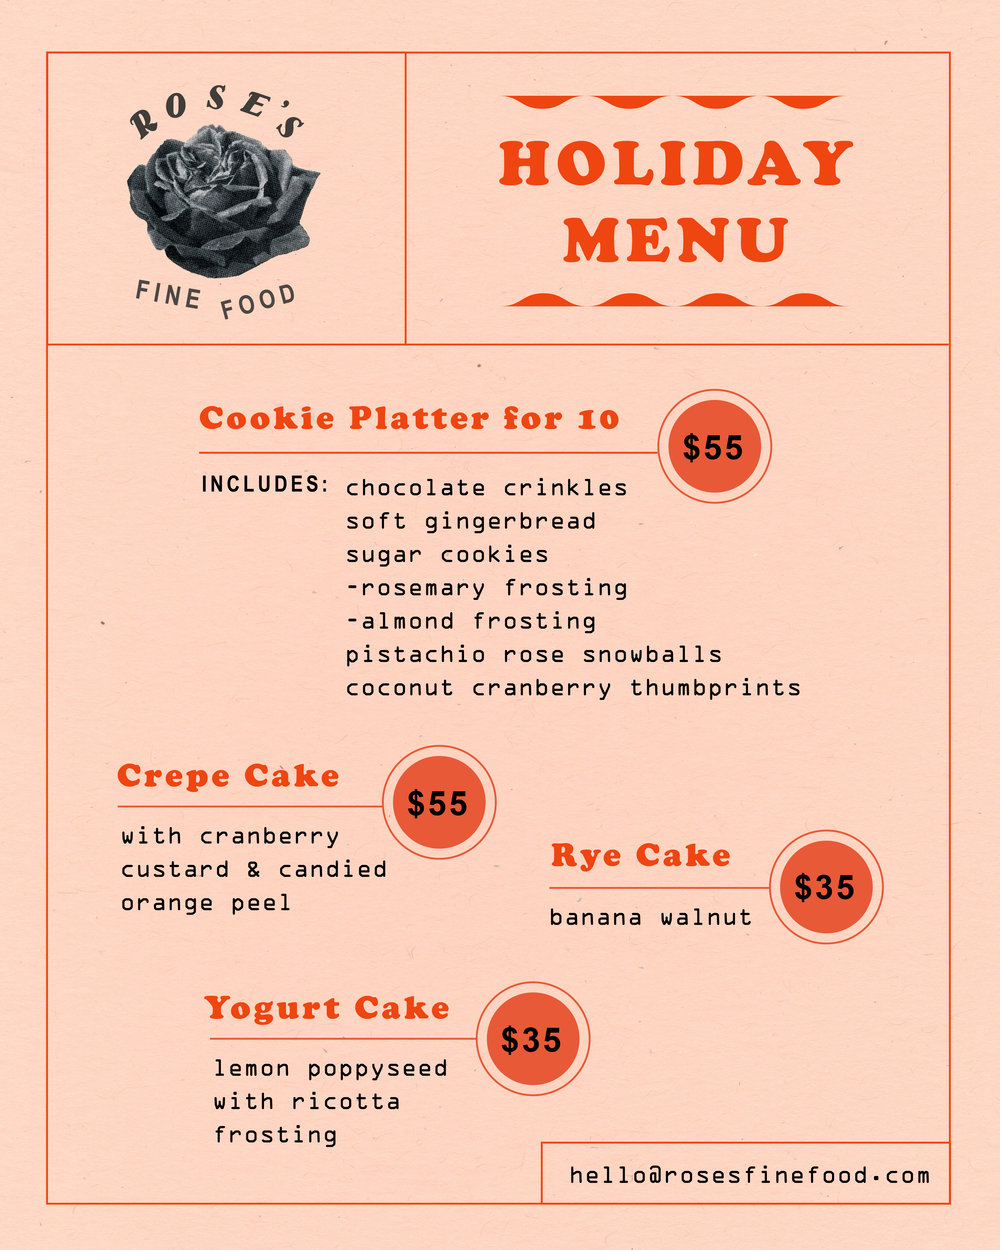 TAKING ORDERS! - You may have the skill, but we've got the time! Call or email to place an order of freshly homemade holiday treats.